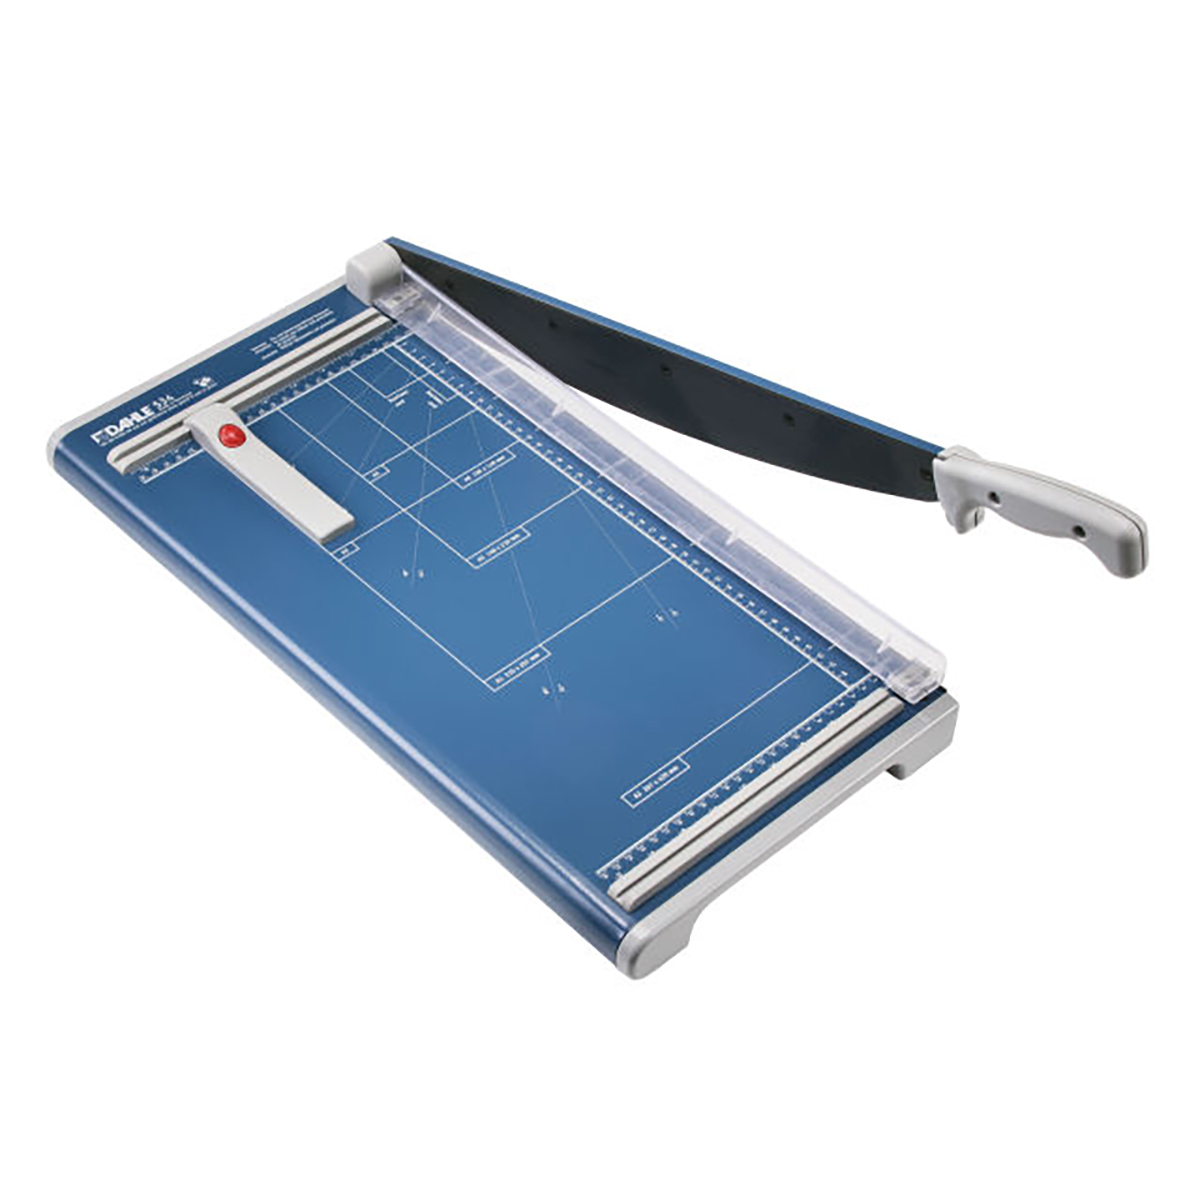 Dahle 534 A3 Personal Guillotine